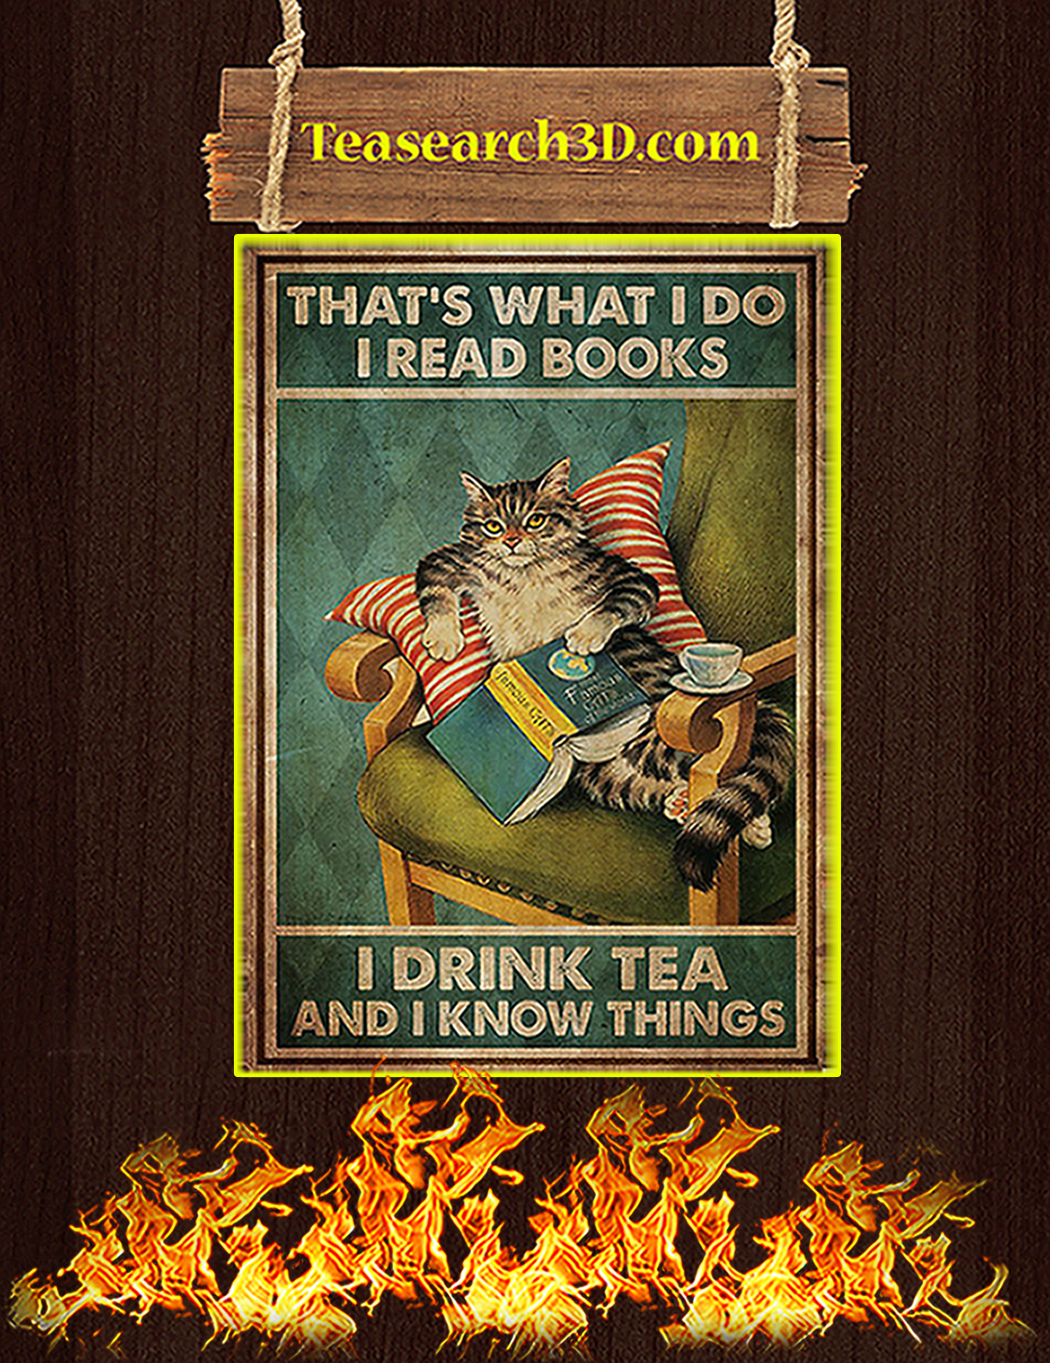 Cat That's what I do I read books I drink tea and I know things poster A1